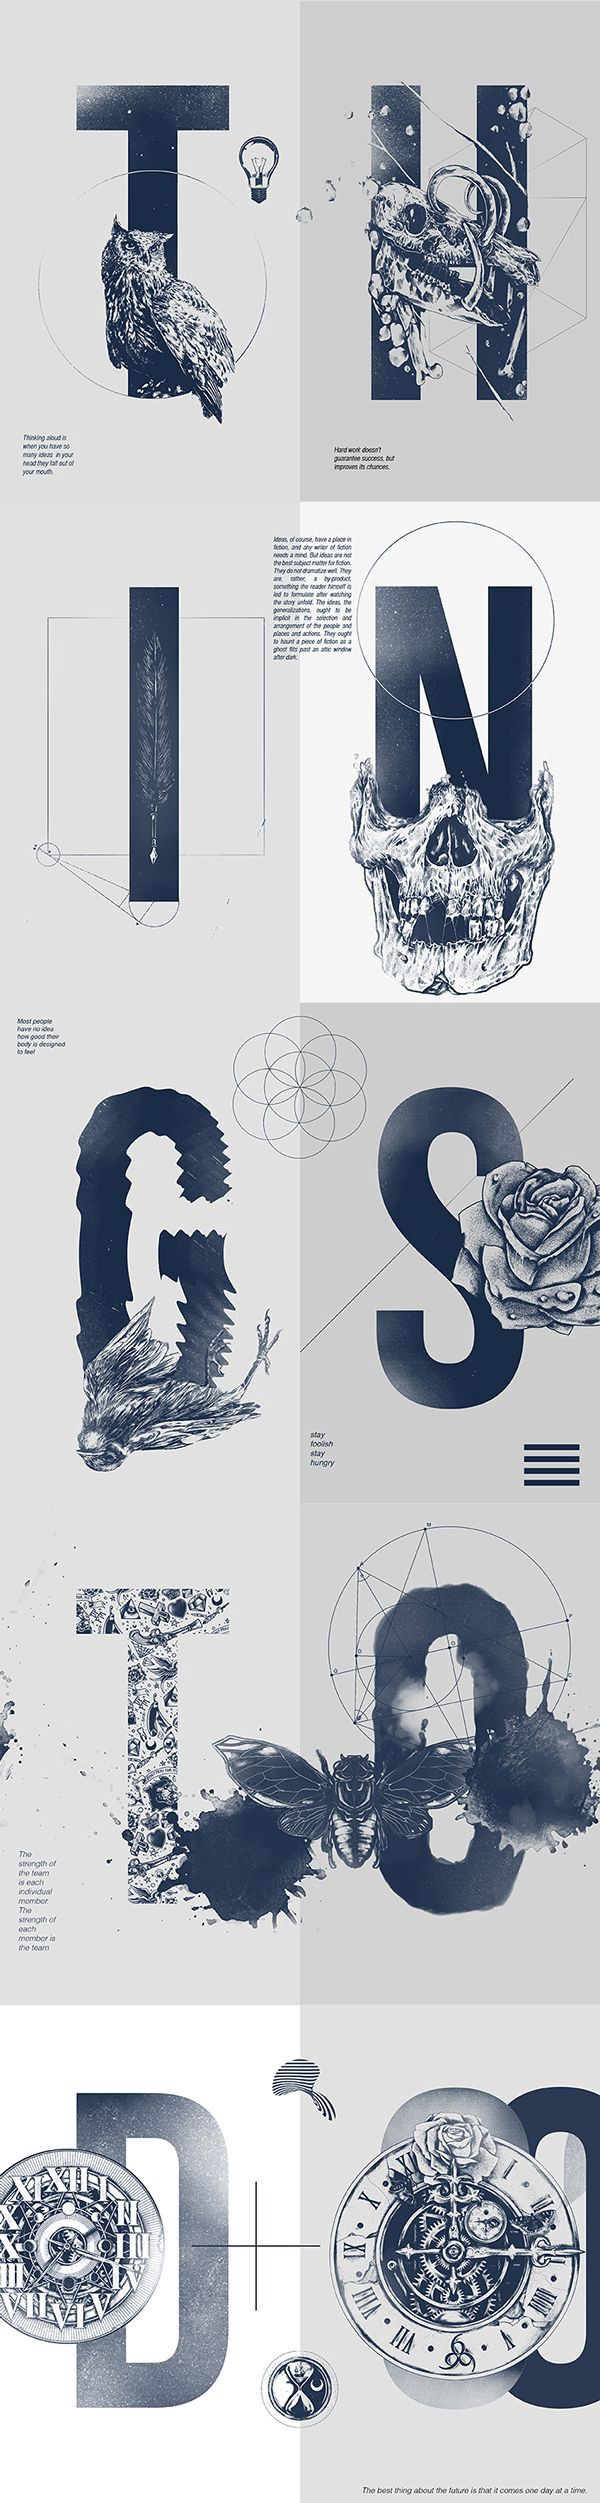 Typography inspiration | #1069